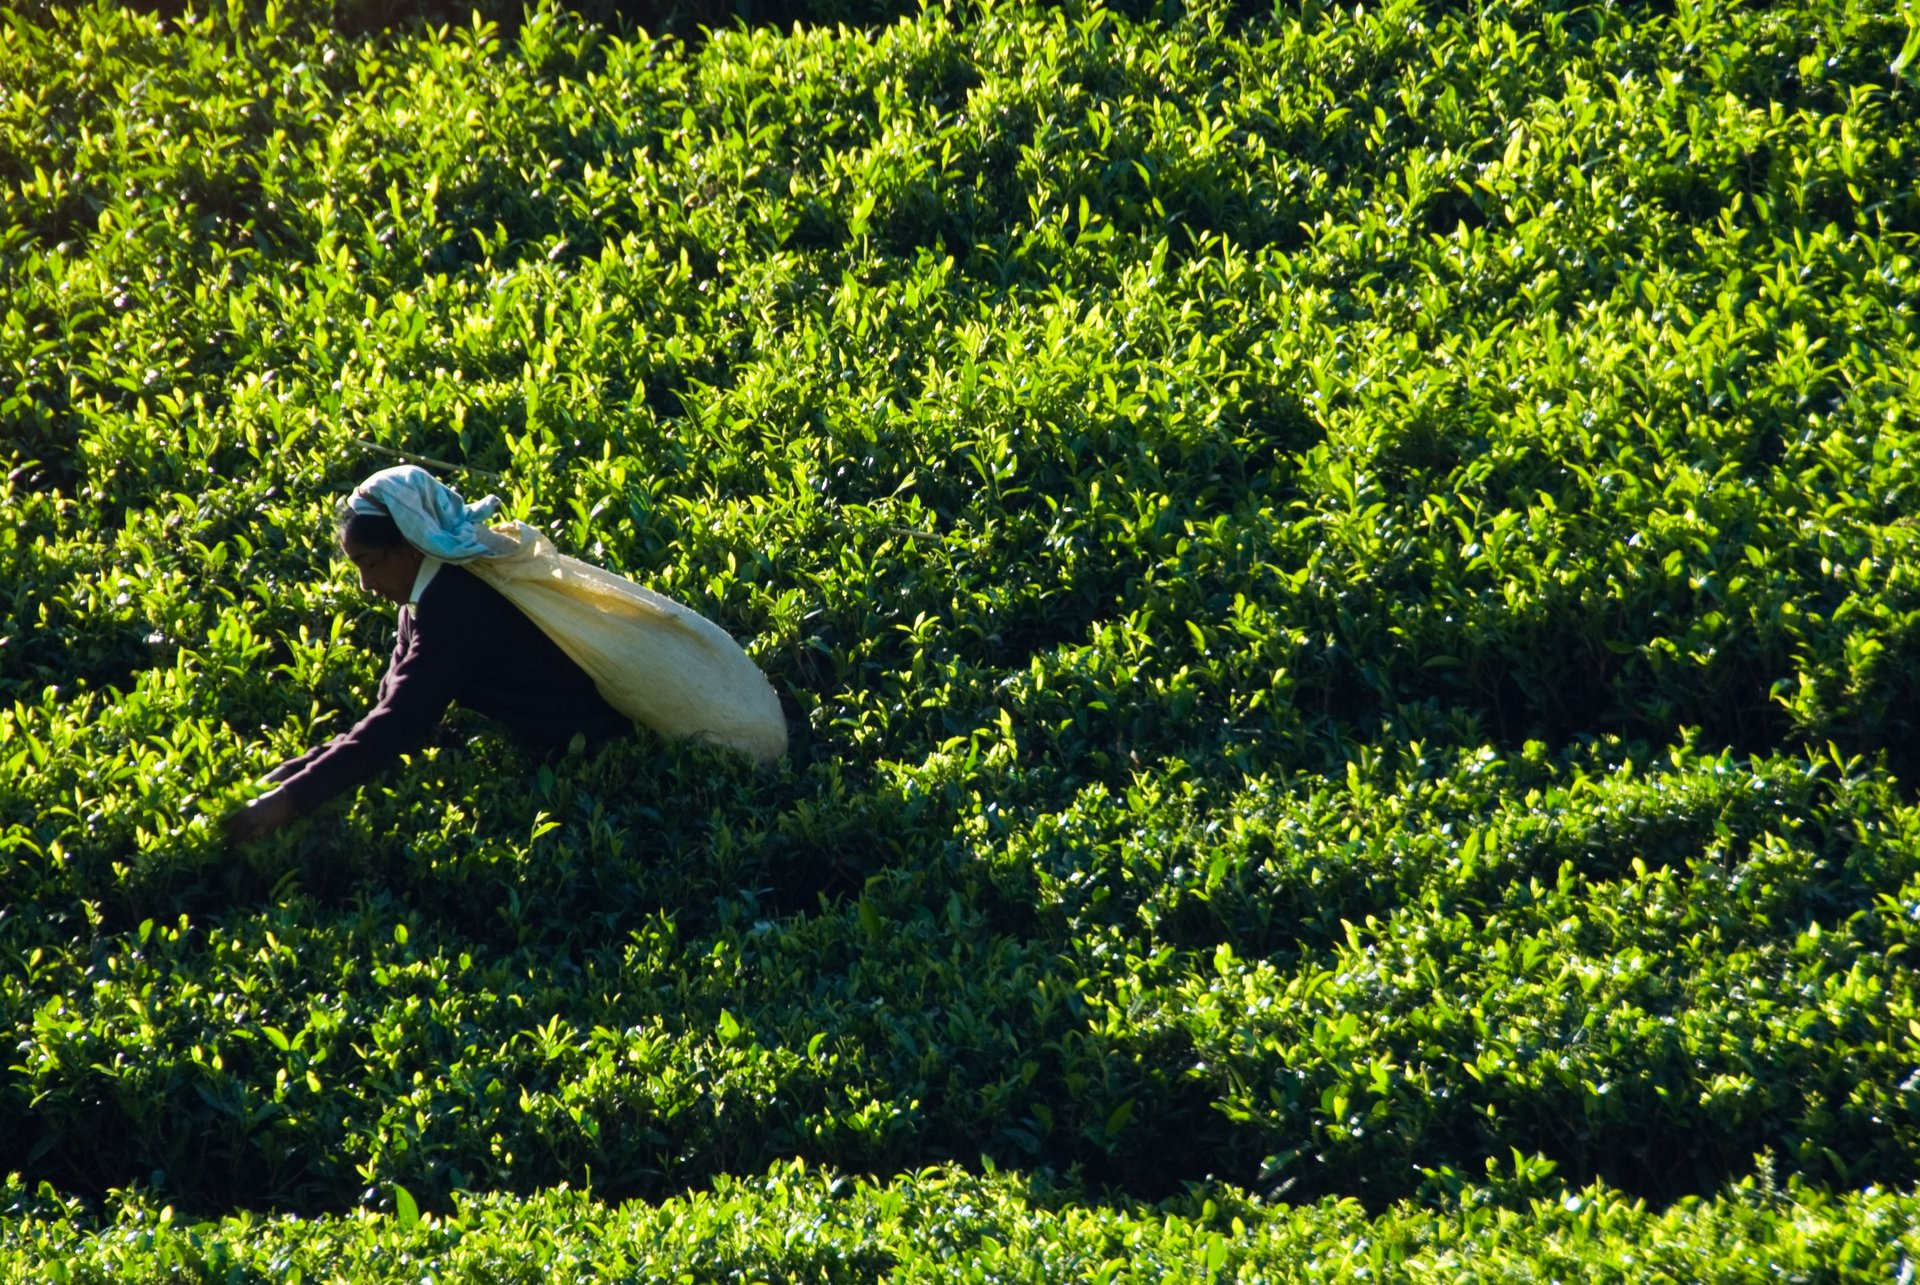 Tea Harvest in Sri Lanka 2020 - Best Time